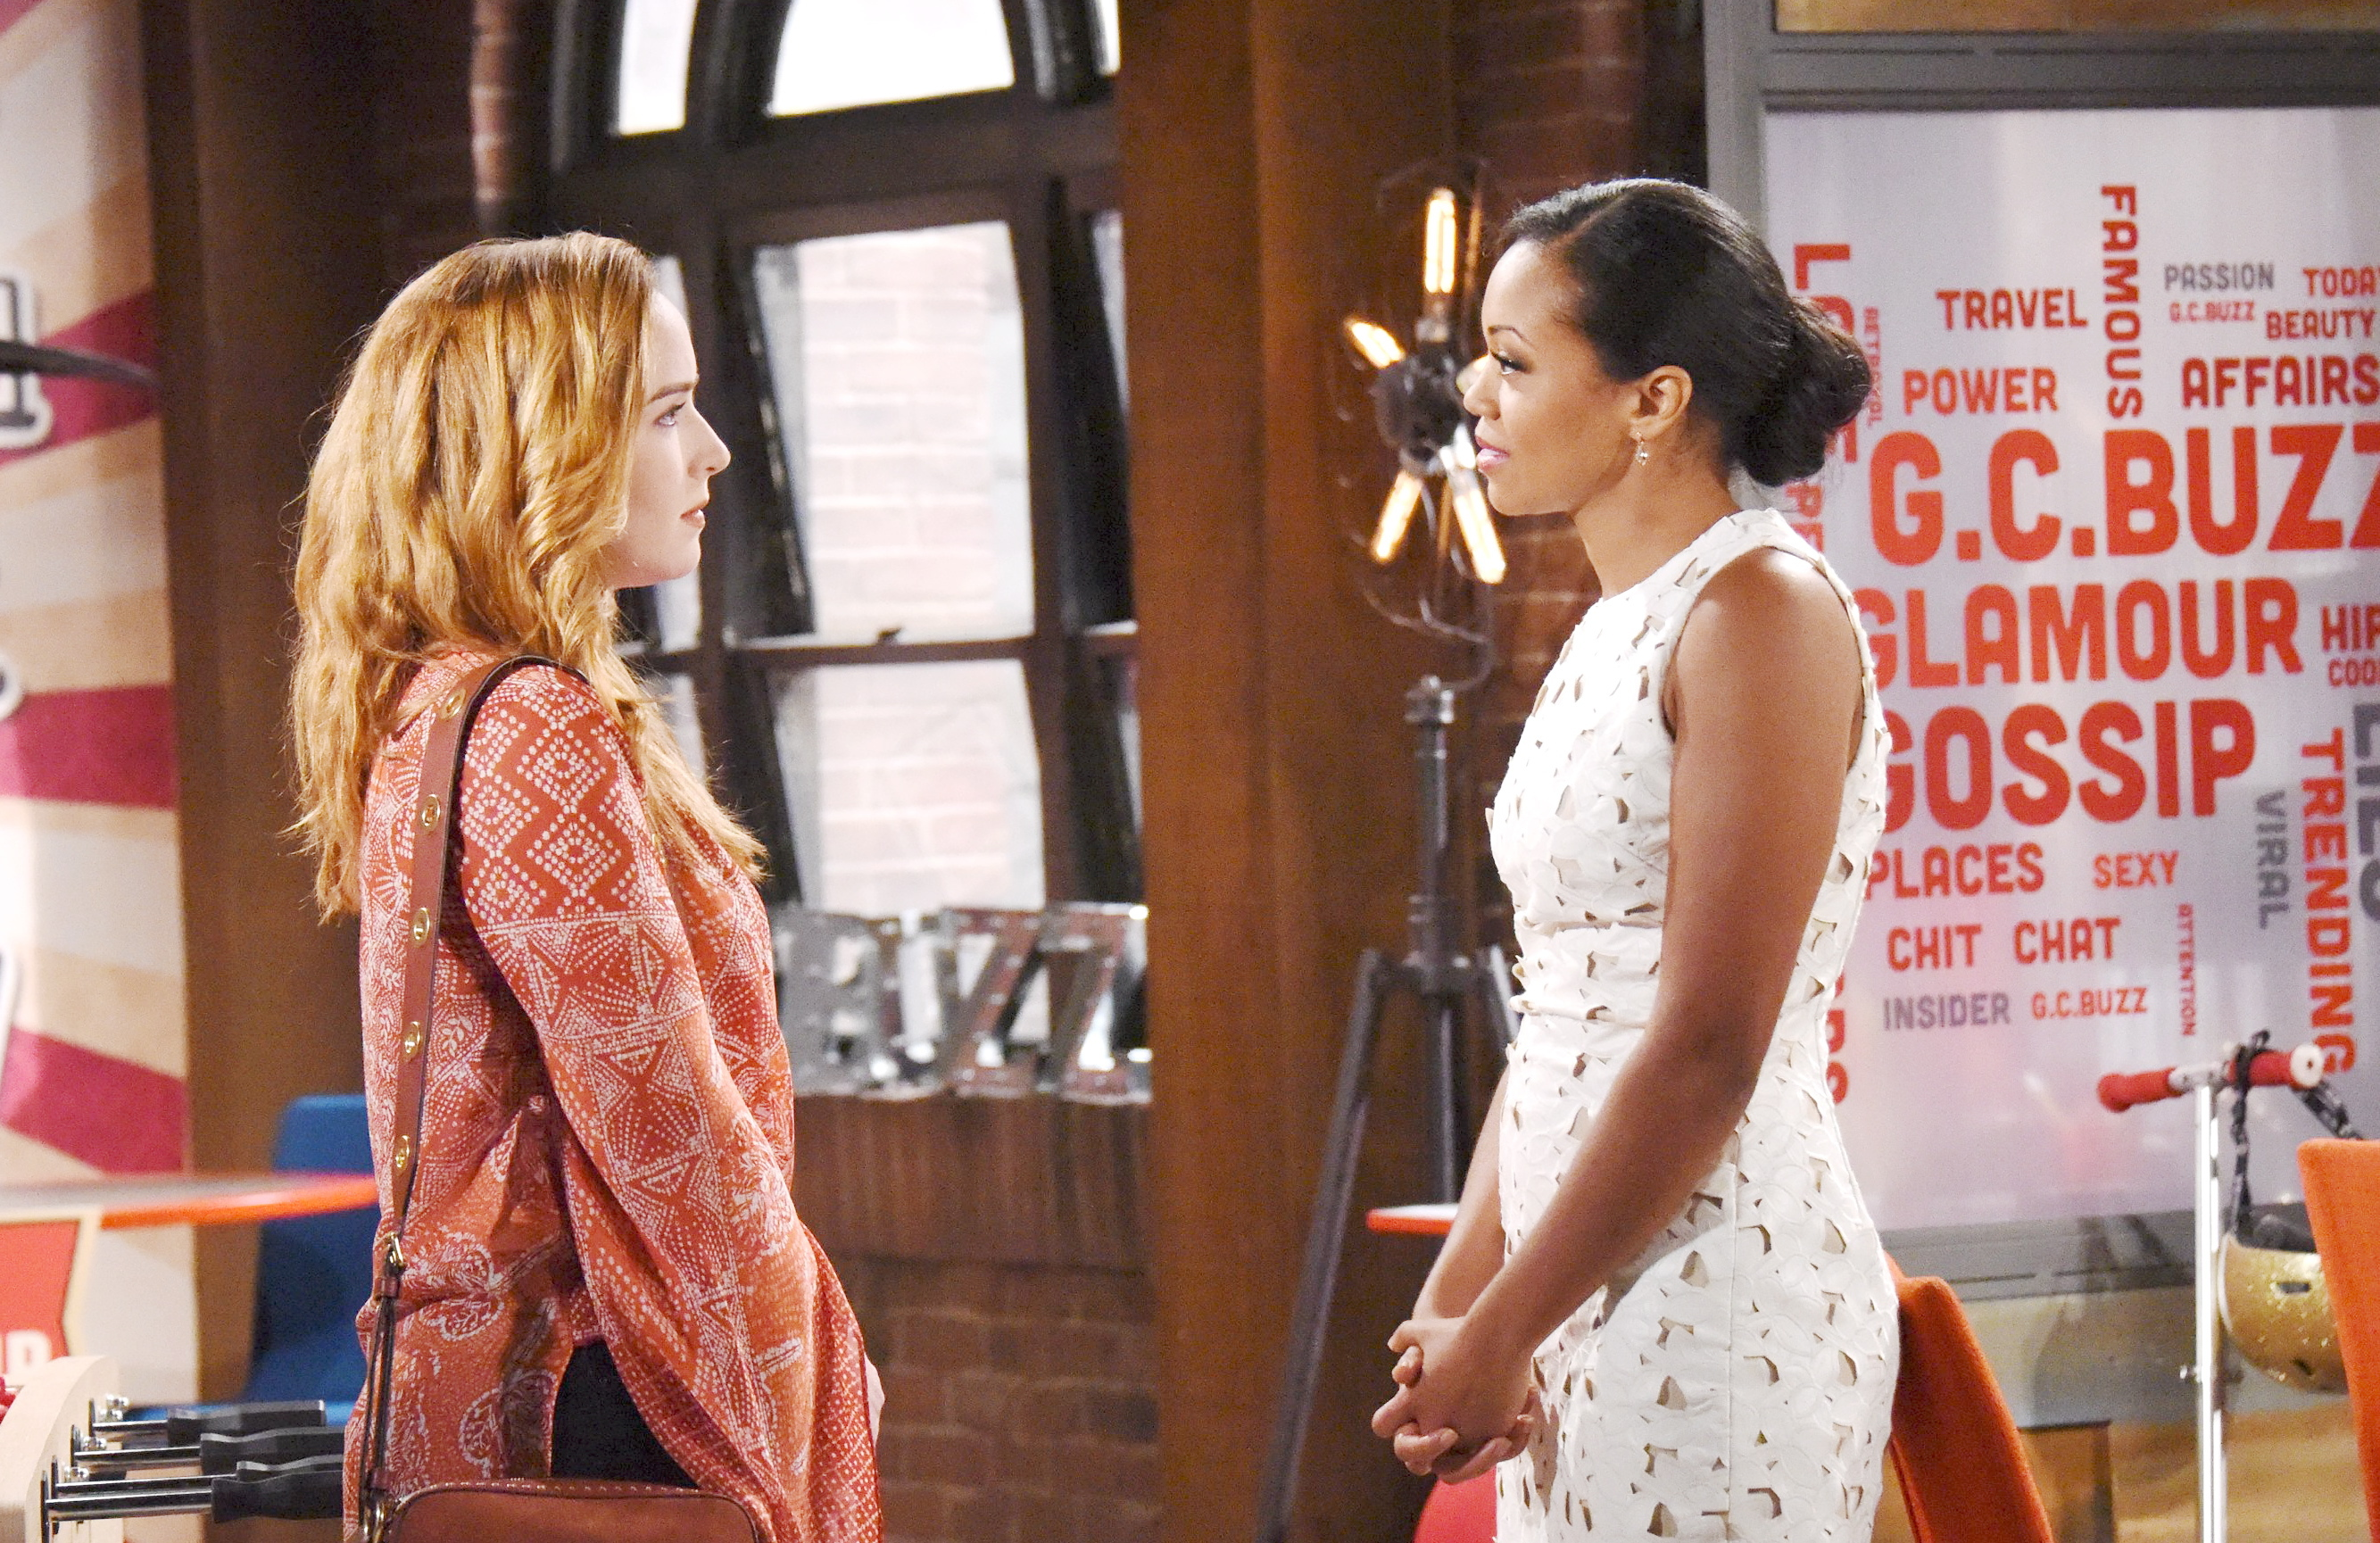 Hilary meddles in Devon and Mariah's relationship on The Young and the Restless